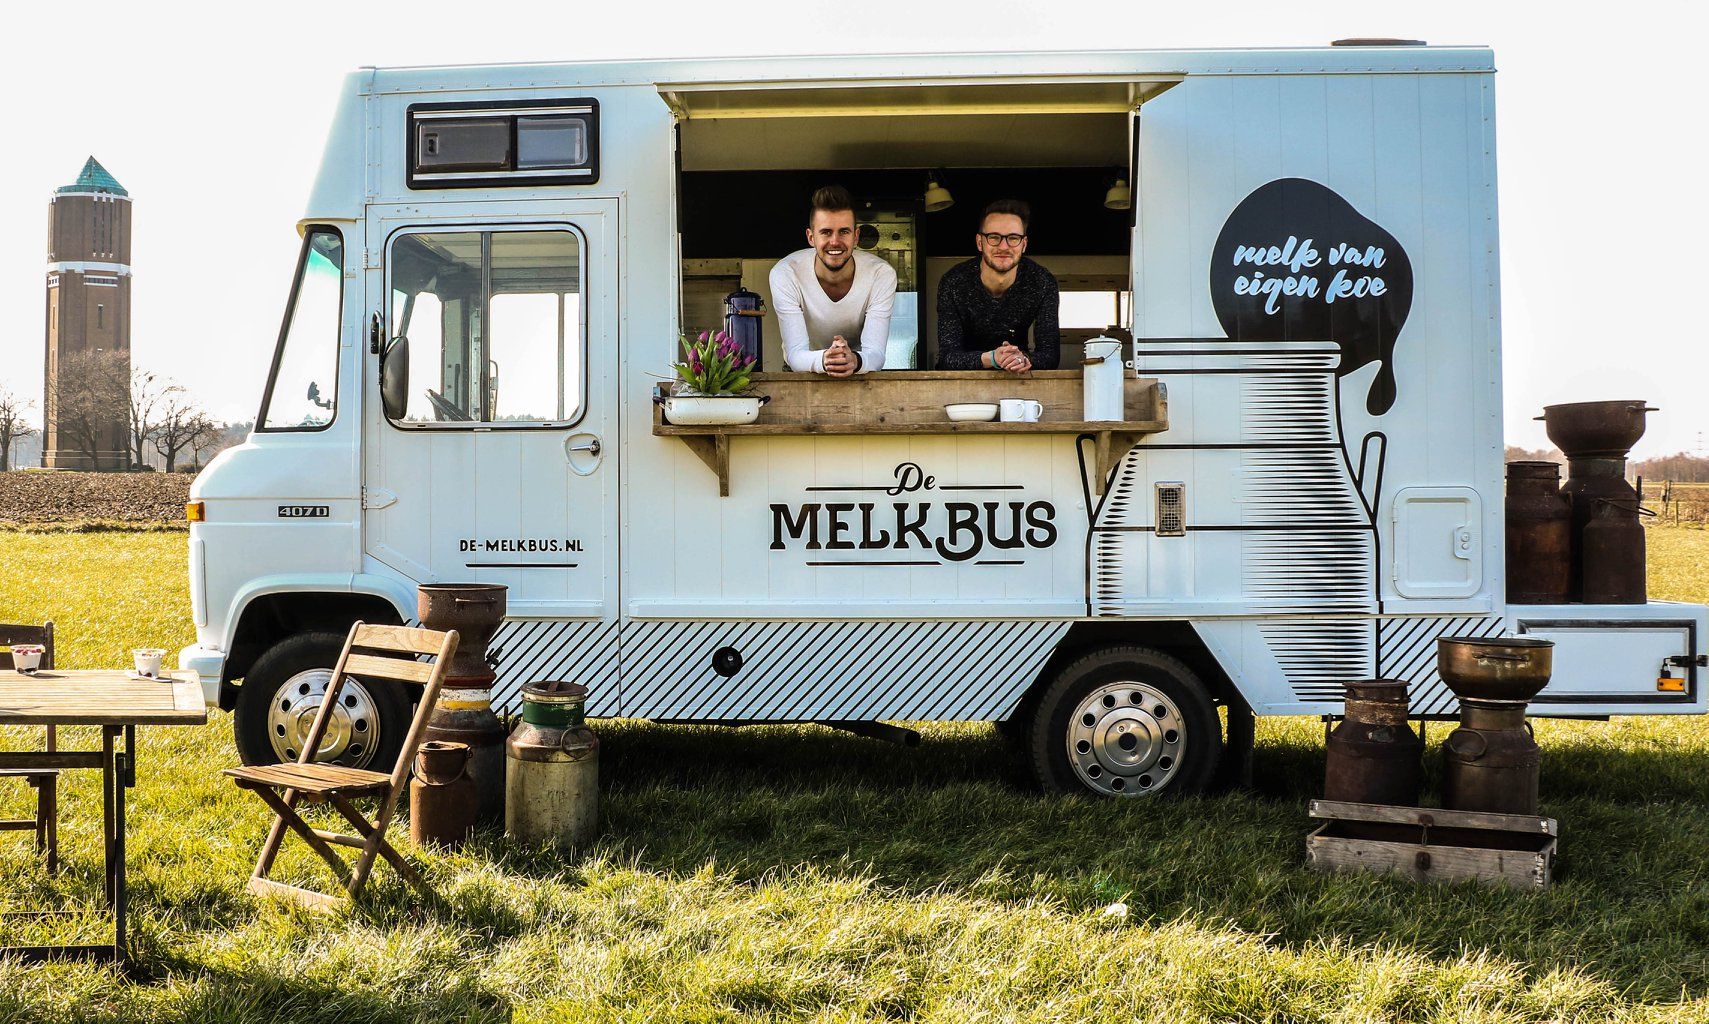 De Melkbus is genomineerd voor de 24kitchen Food Truck Awards